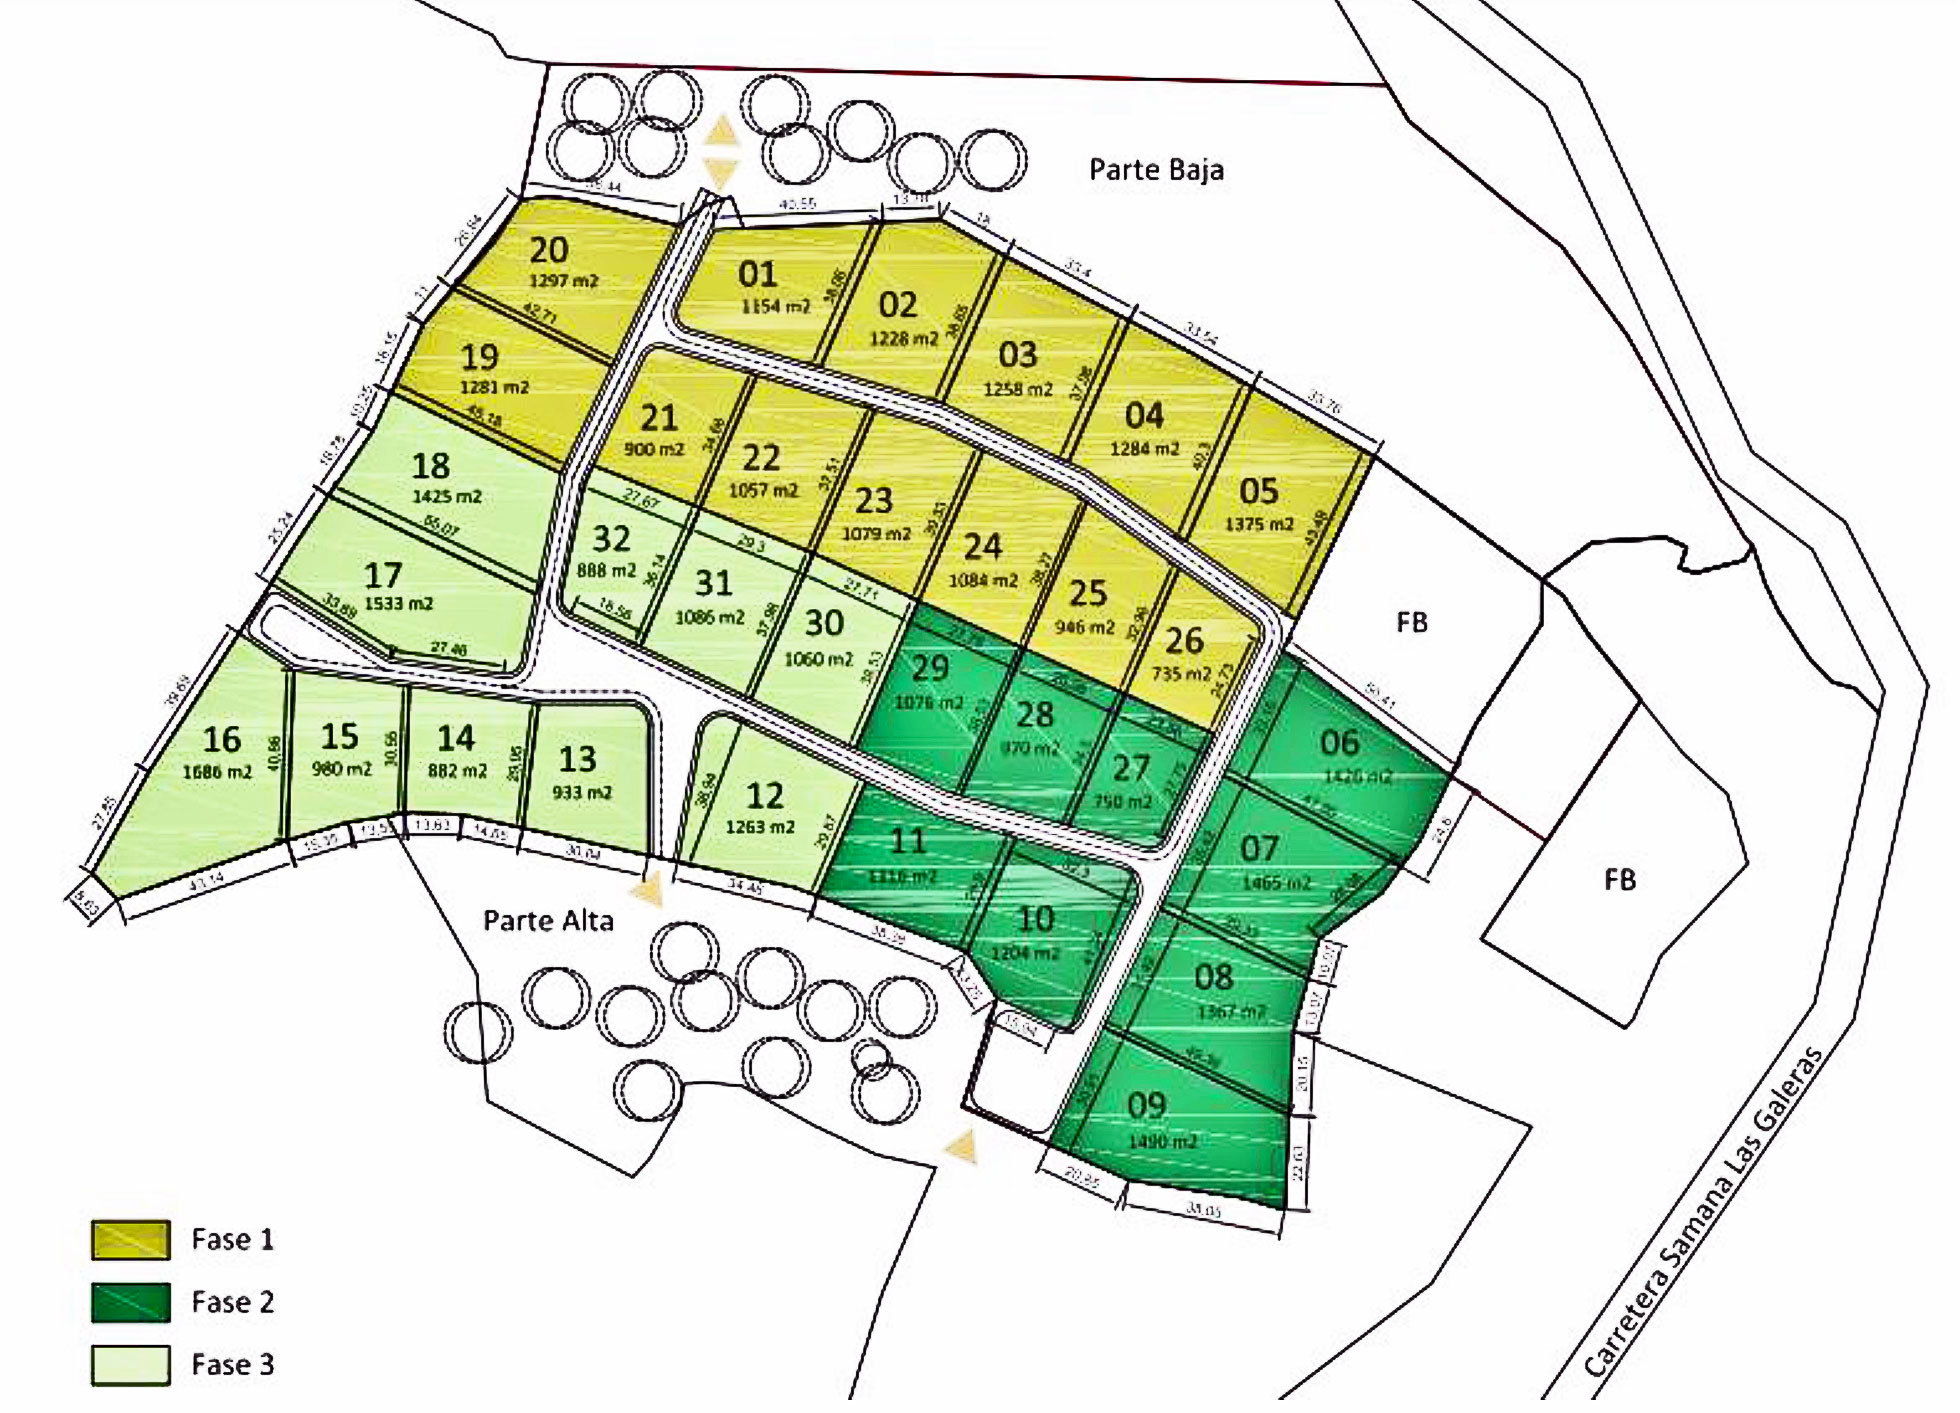 talanquera-site-plan-fases-colors